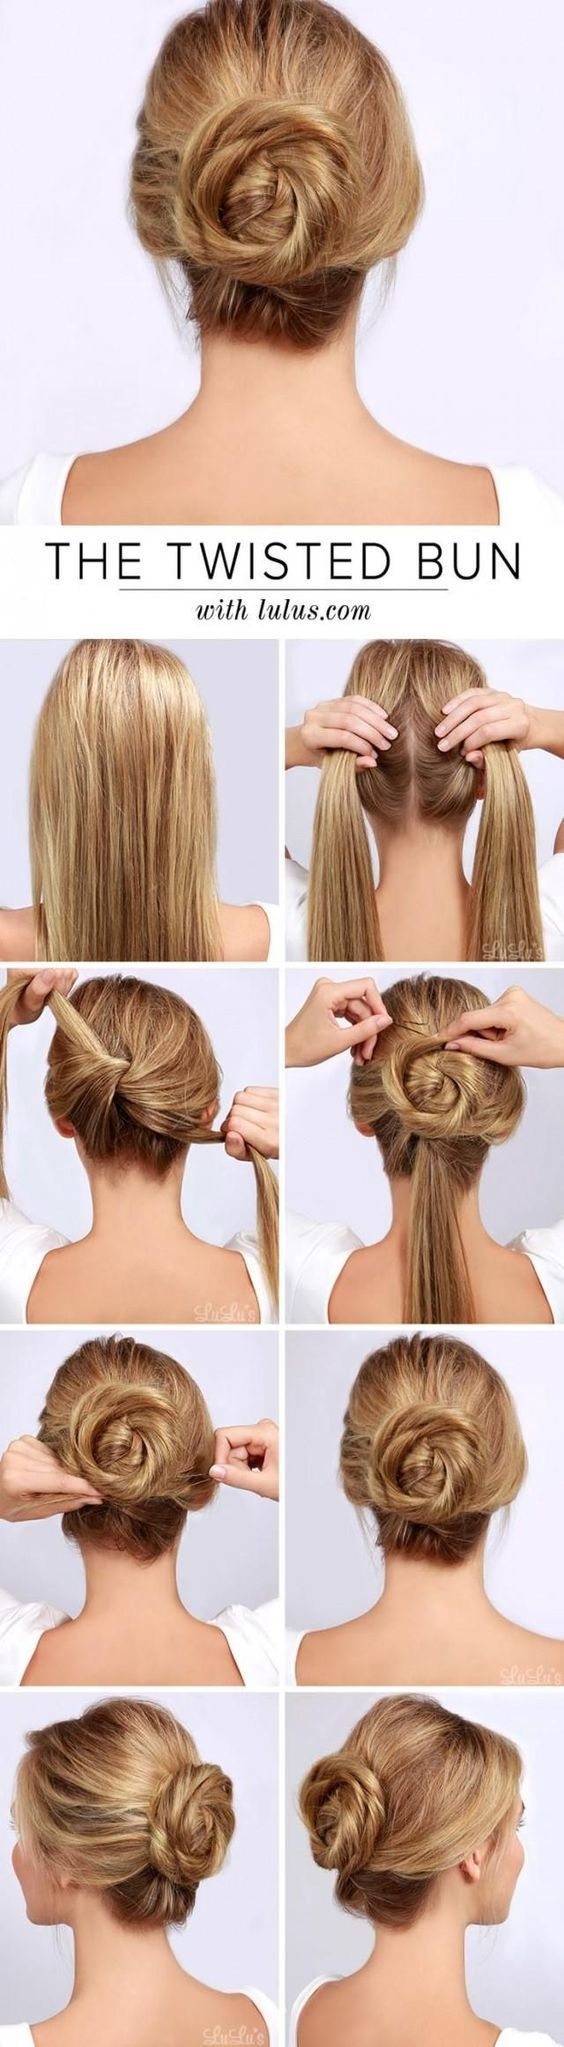 45 Step by Step Hair Tutorials For The Beauties In Town! - Page 2 of 6 - Trend To Wear